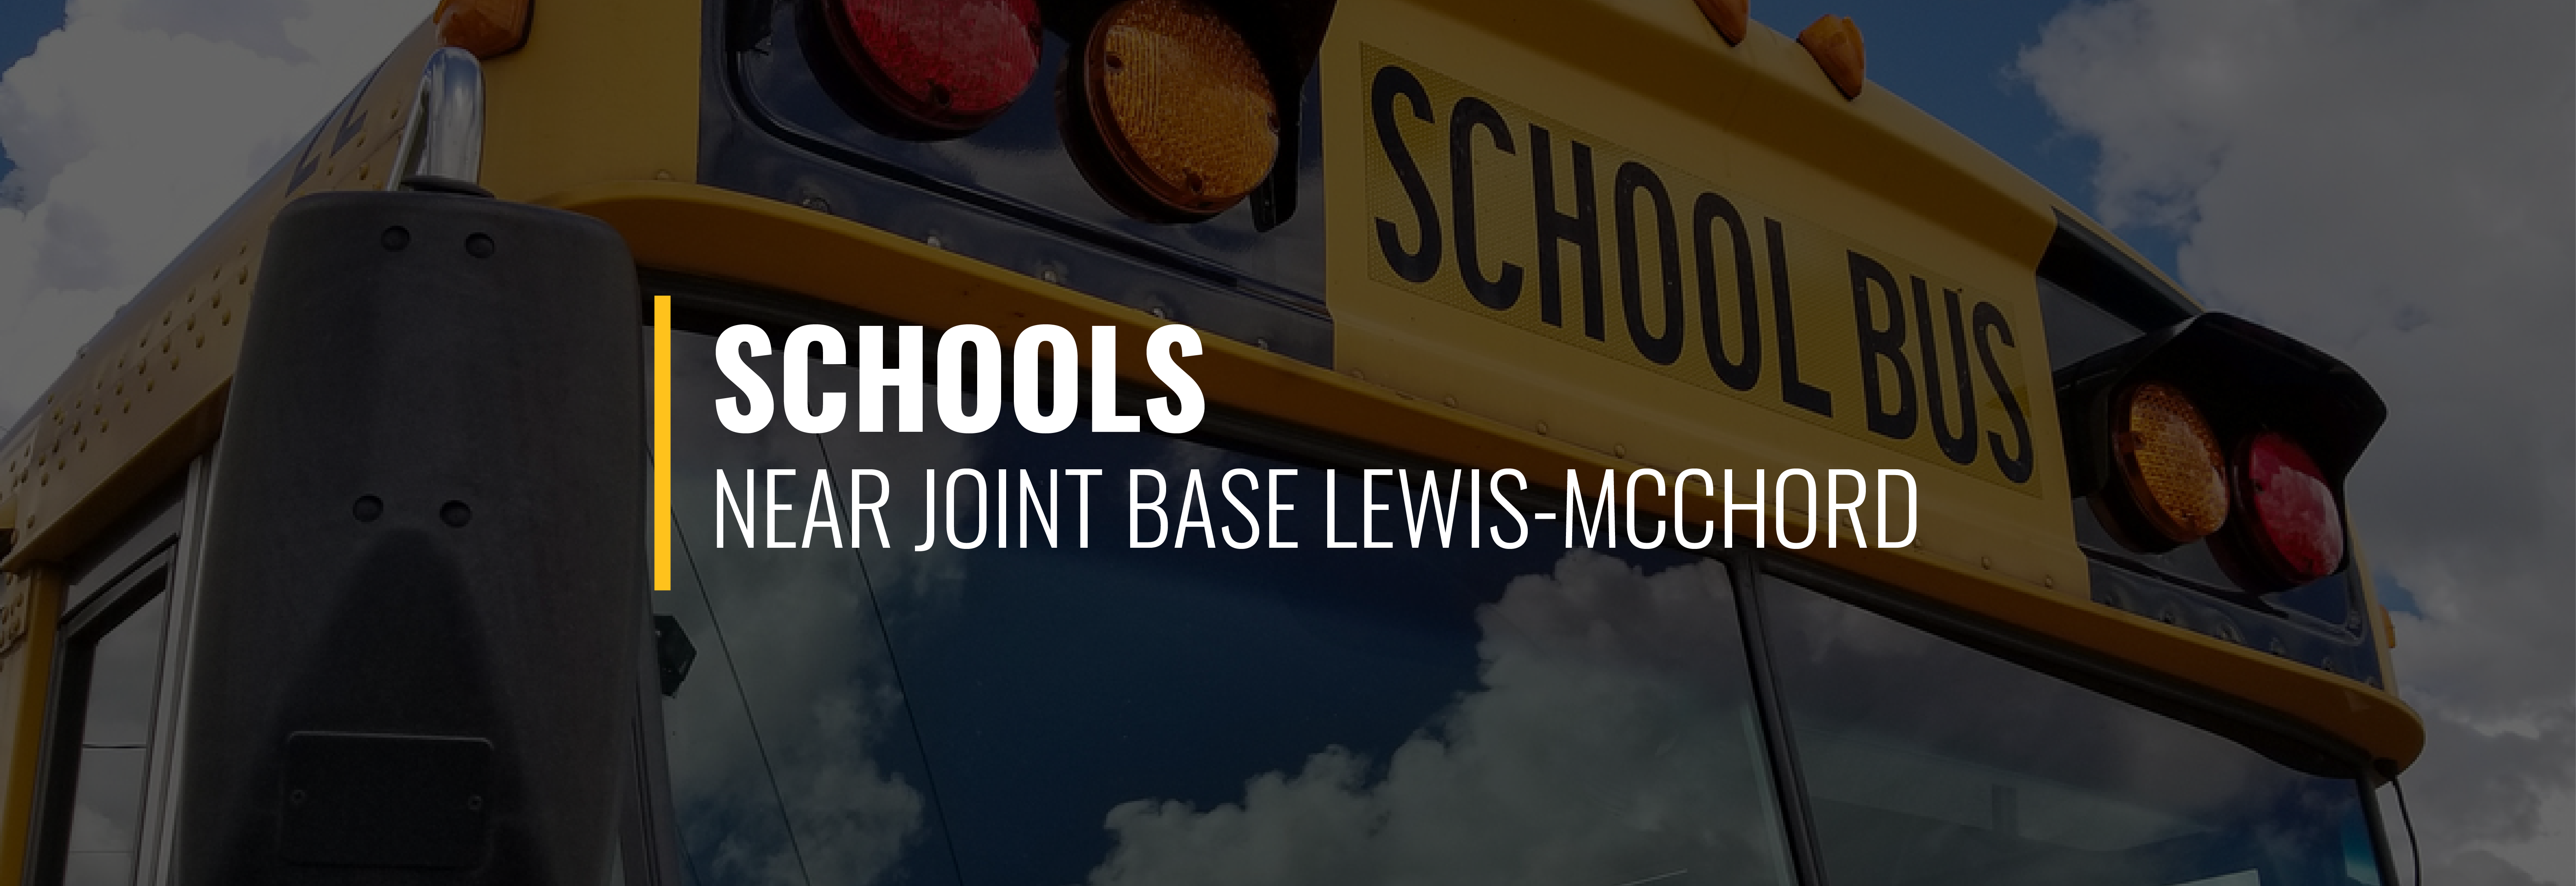 Joint Base Lewis-McChord Schools